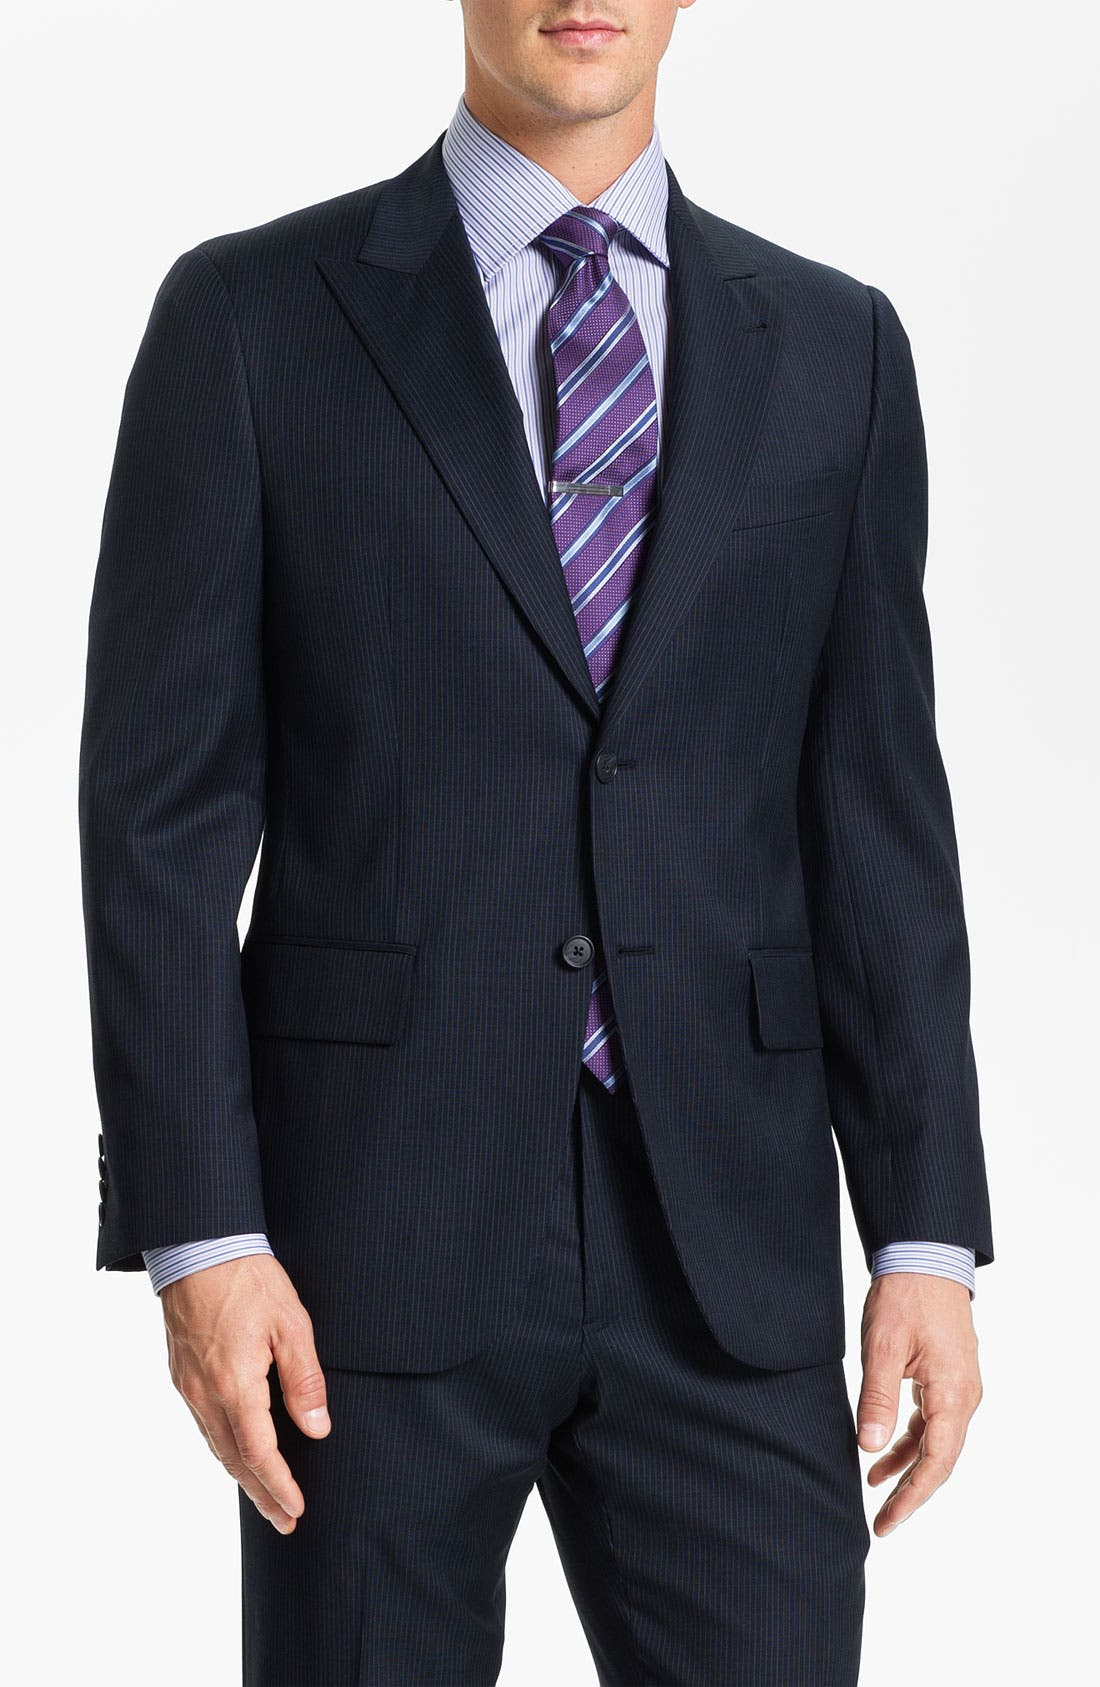 Alternate Image 1 Selected - Joseph Abboud Trim Fit Peak Lapel Stripe Suit